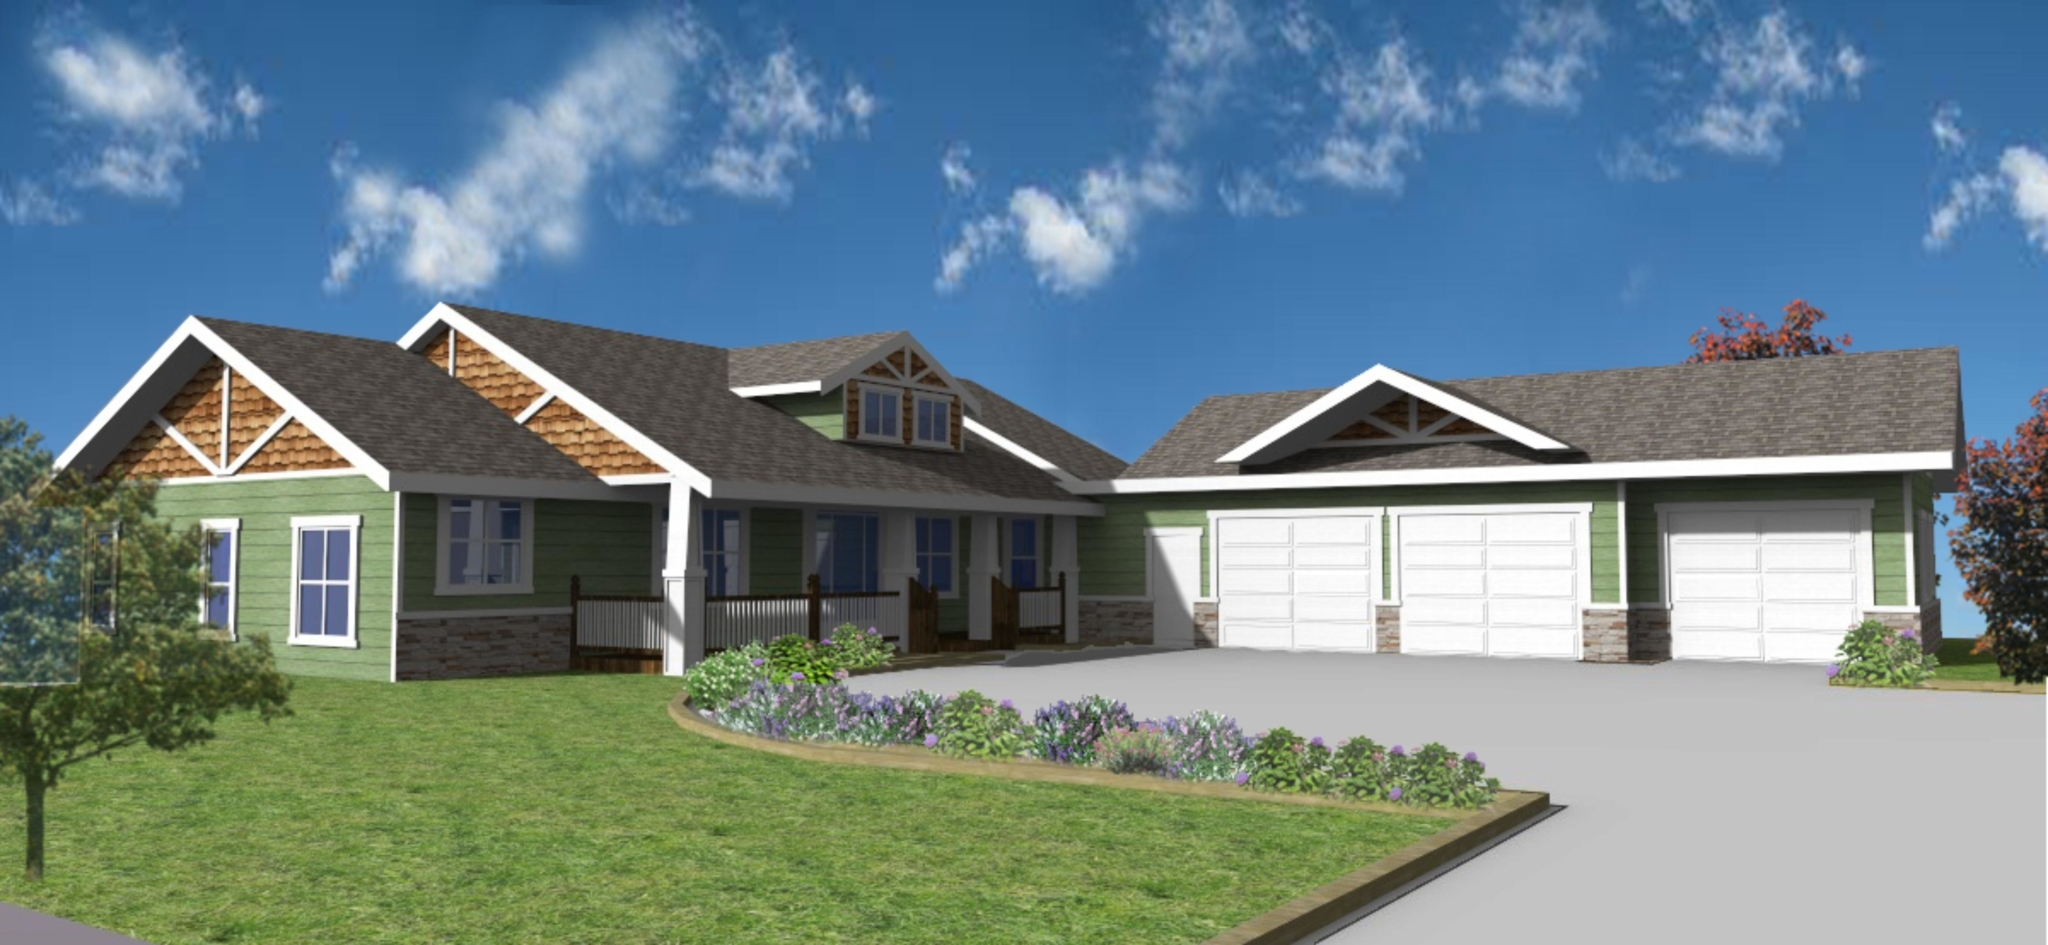 Aurora home design drafting ltd edmonton ab ourbis for Home designs ltd